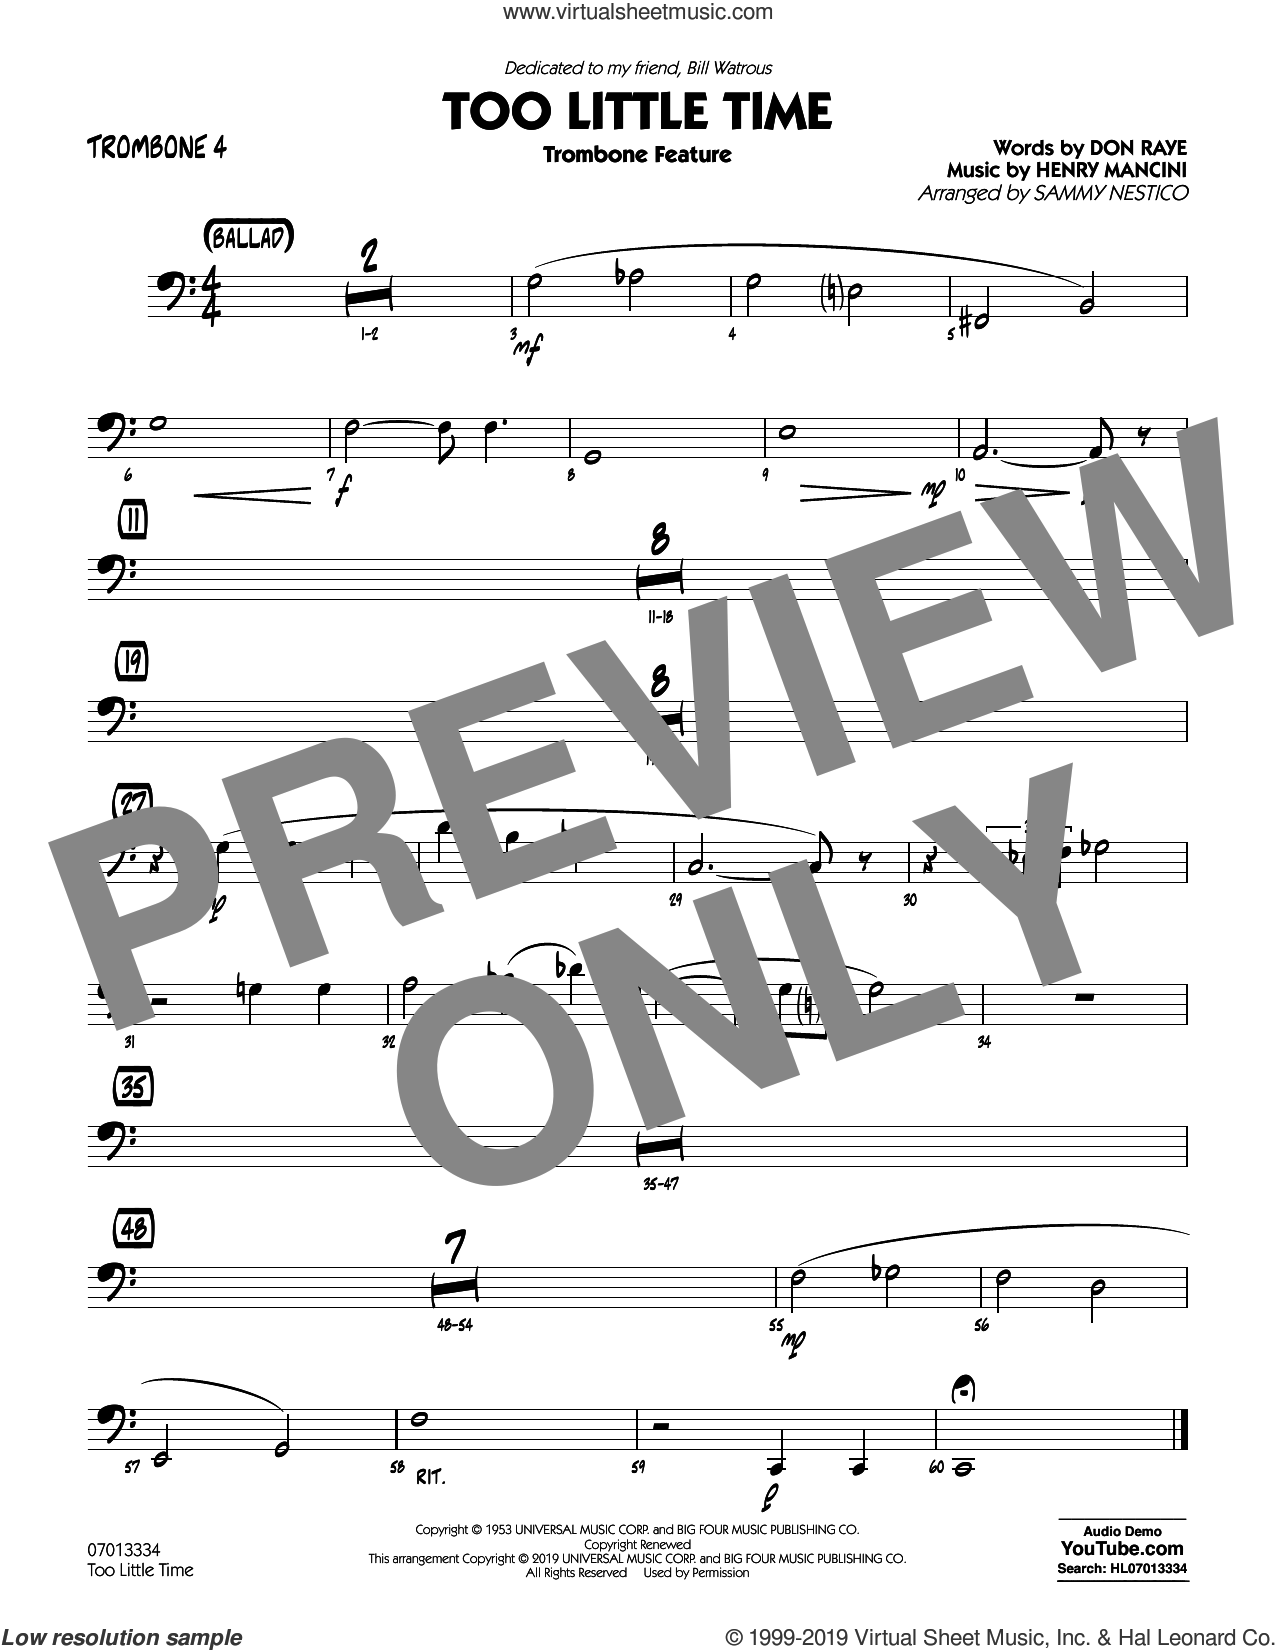 Too Little Time (arr. Sammy Nestico), conductor score (full score) sheet music for jazz band (trombone 4) by Henry Mancini, Sammy Nestico, Bill Watrous and Don Raye, intermediate skill level